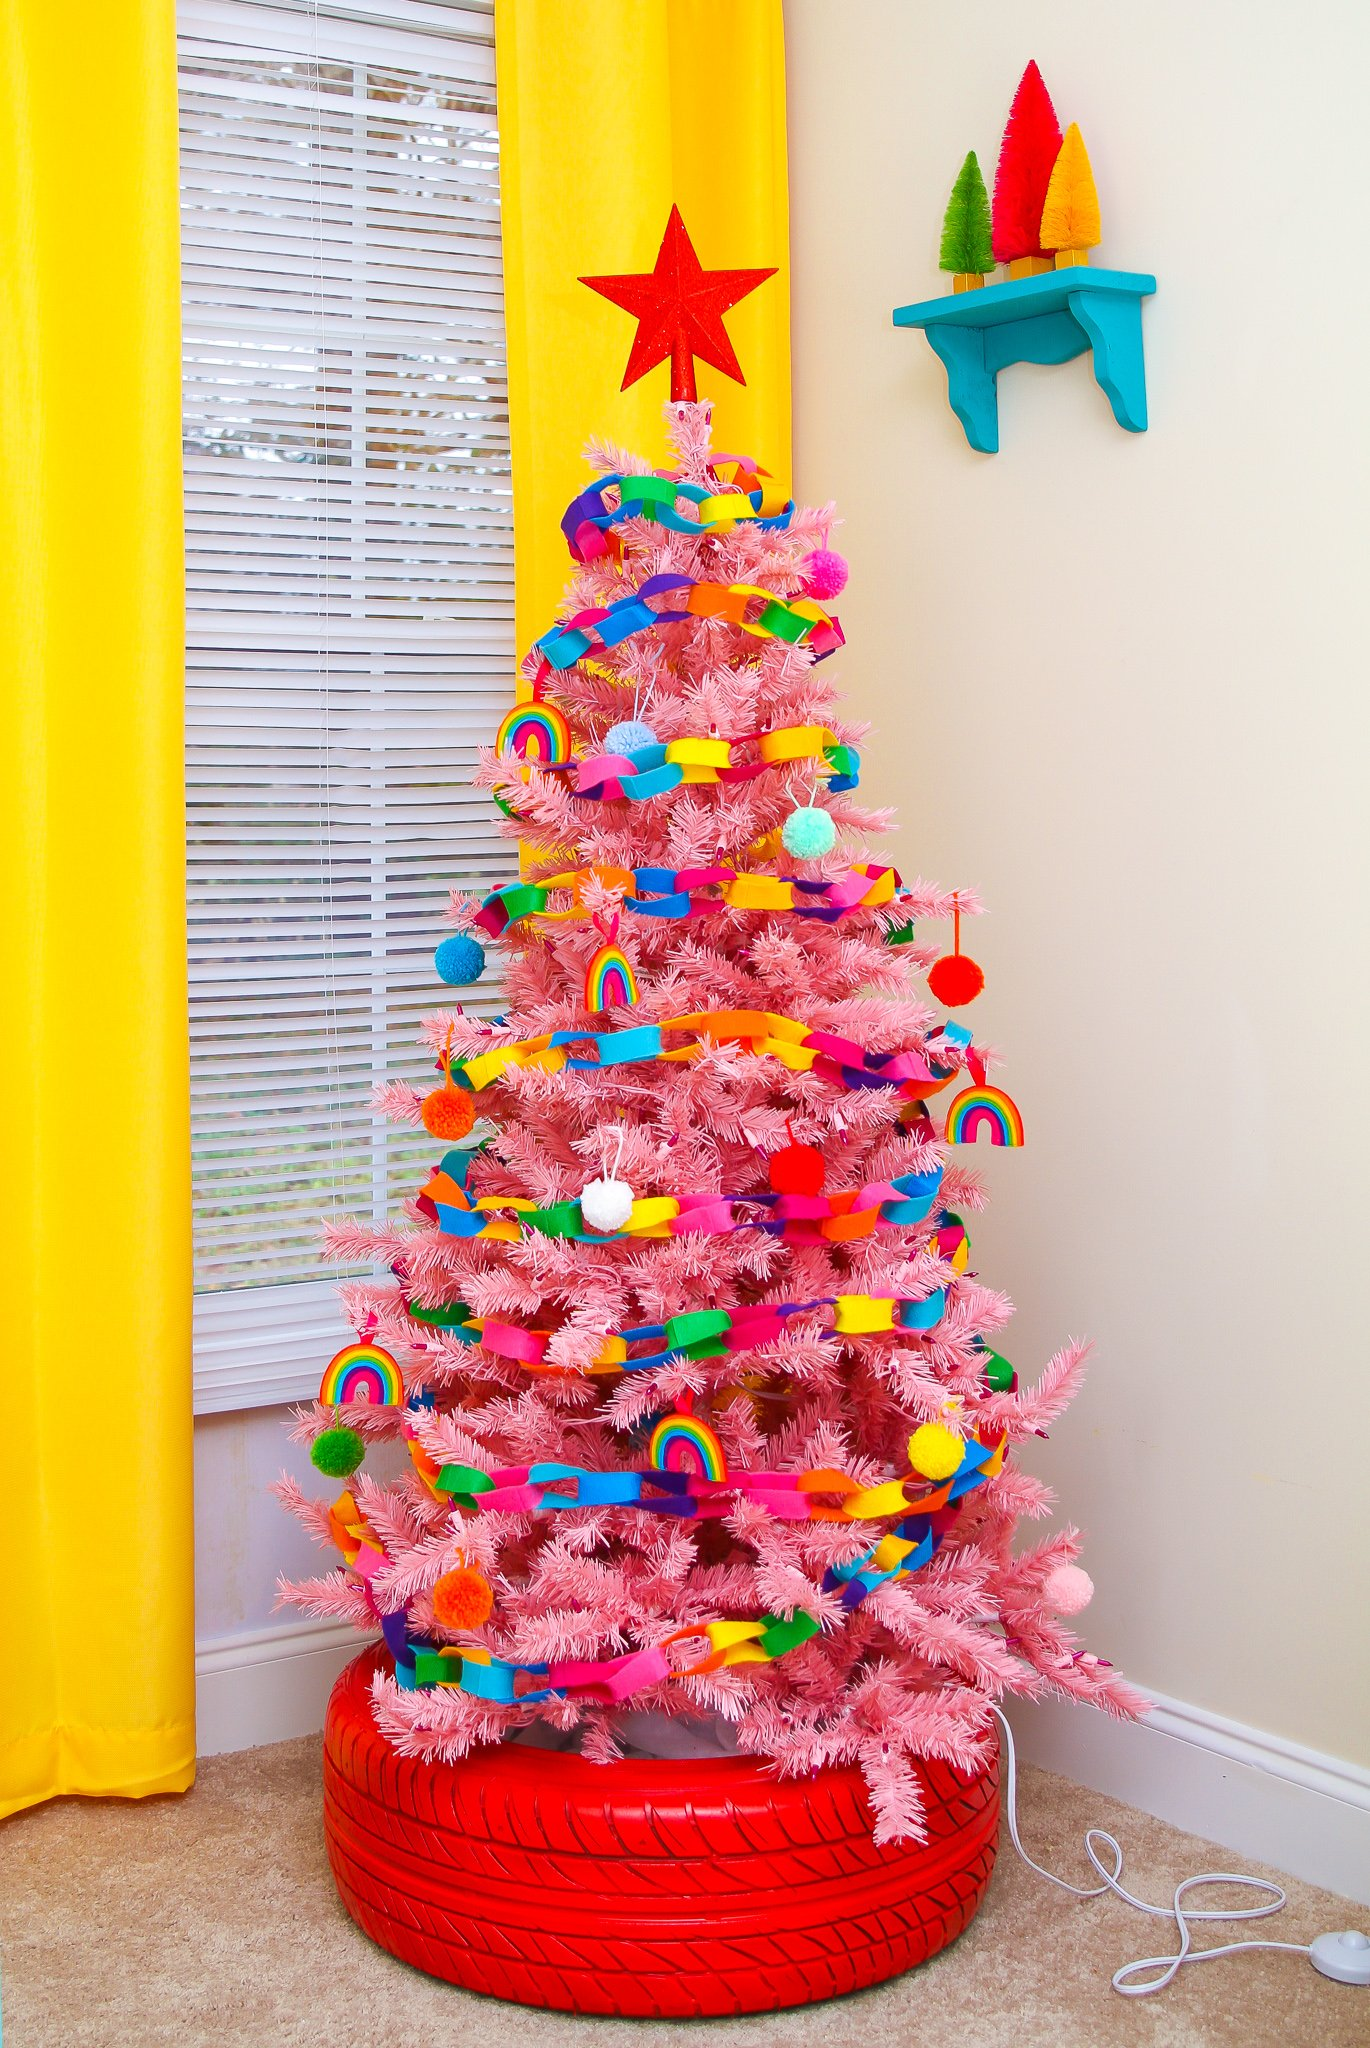 Colorful Christmas Tree Images.Bright Colorful Christmas Trees Ideas To Make Them Lively